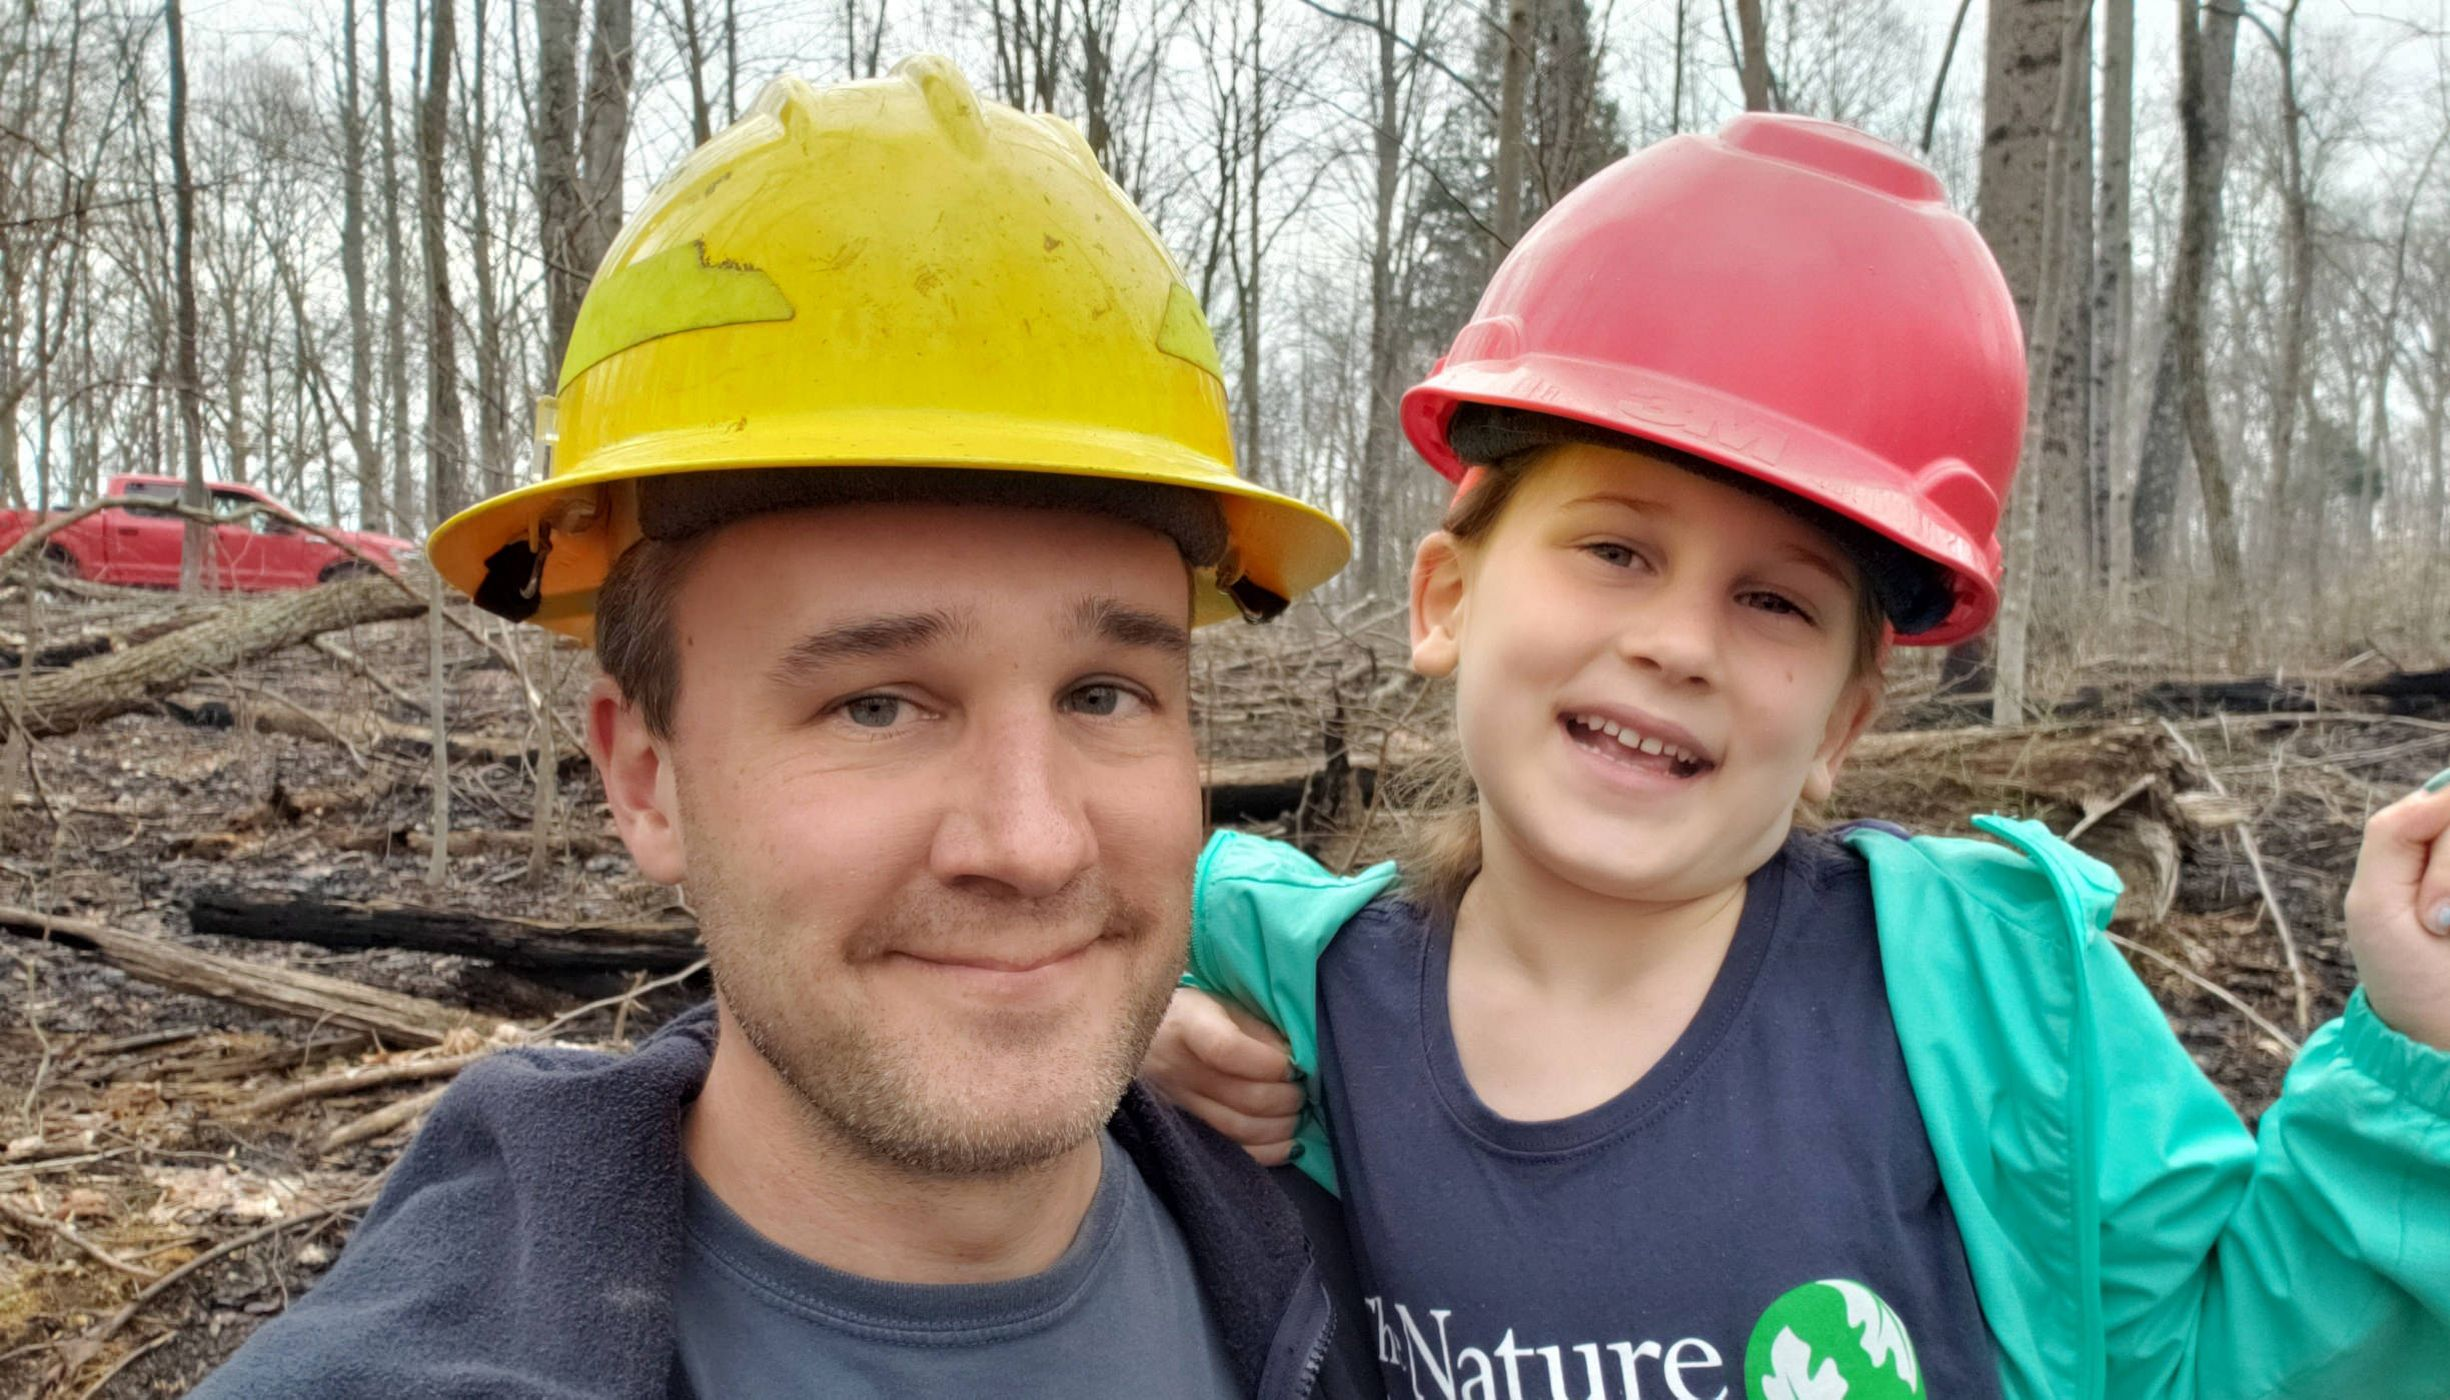 Indiana Chapter forester Chris Neggers and daughter Diana, 2019.